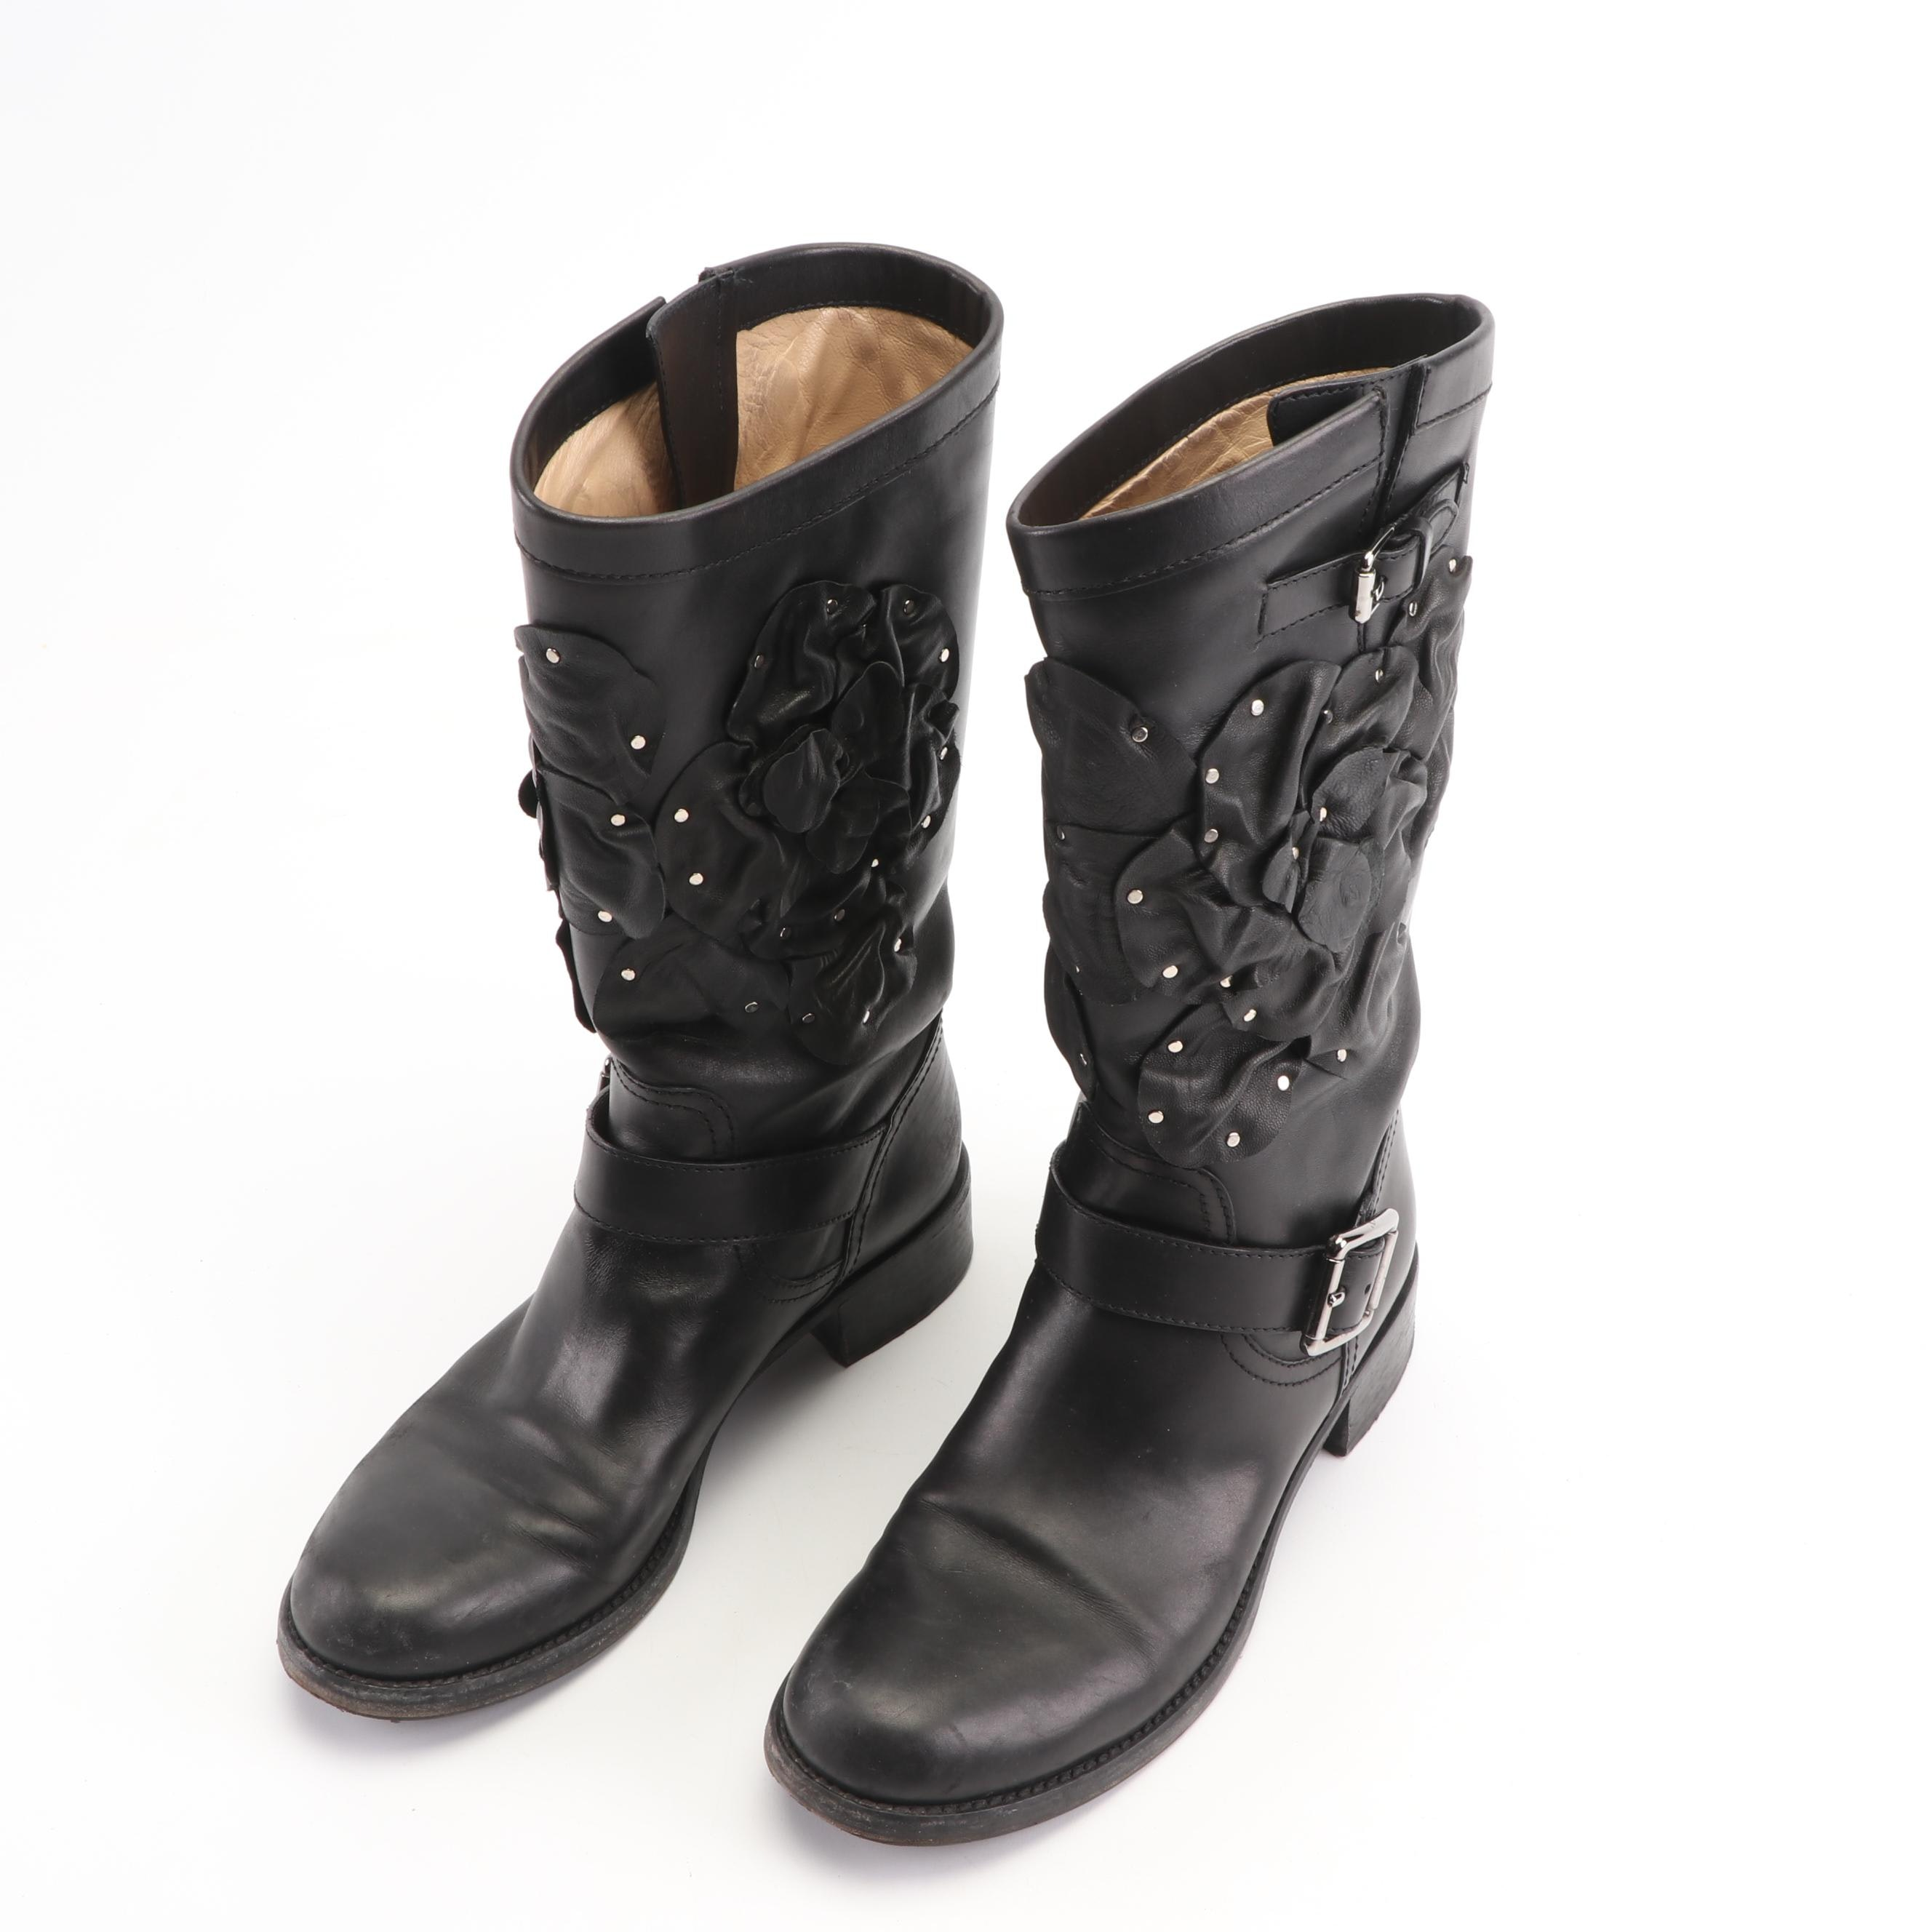 Valentino Black Leather Buckle Boots with Applied Studded Florals, Made in Italy